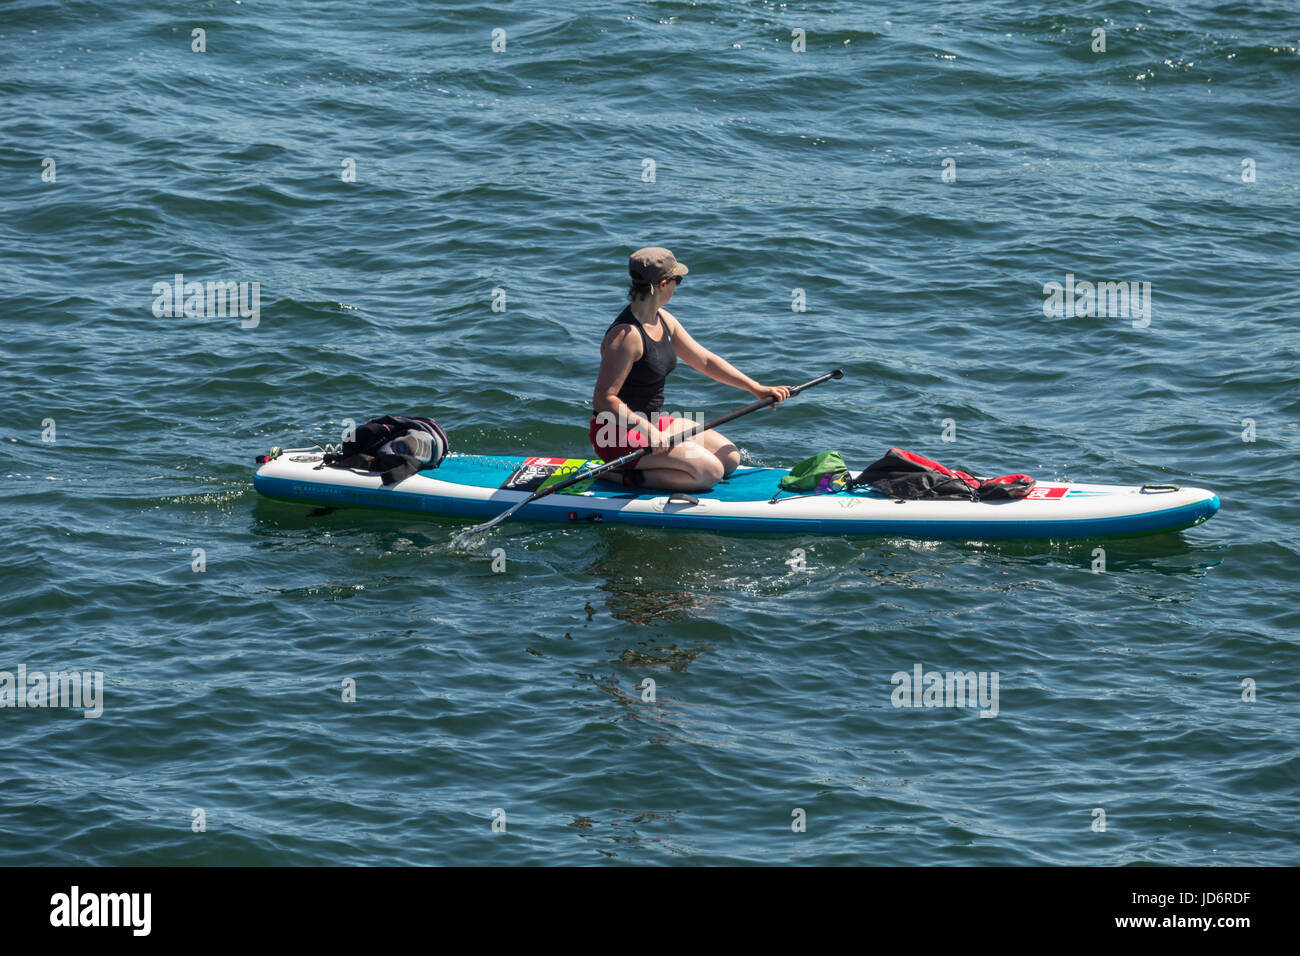 A young woman paddle boarding in Plymouth Sound on a hot clear day. - Stock Image